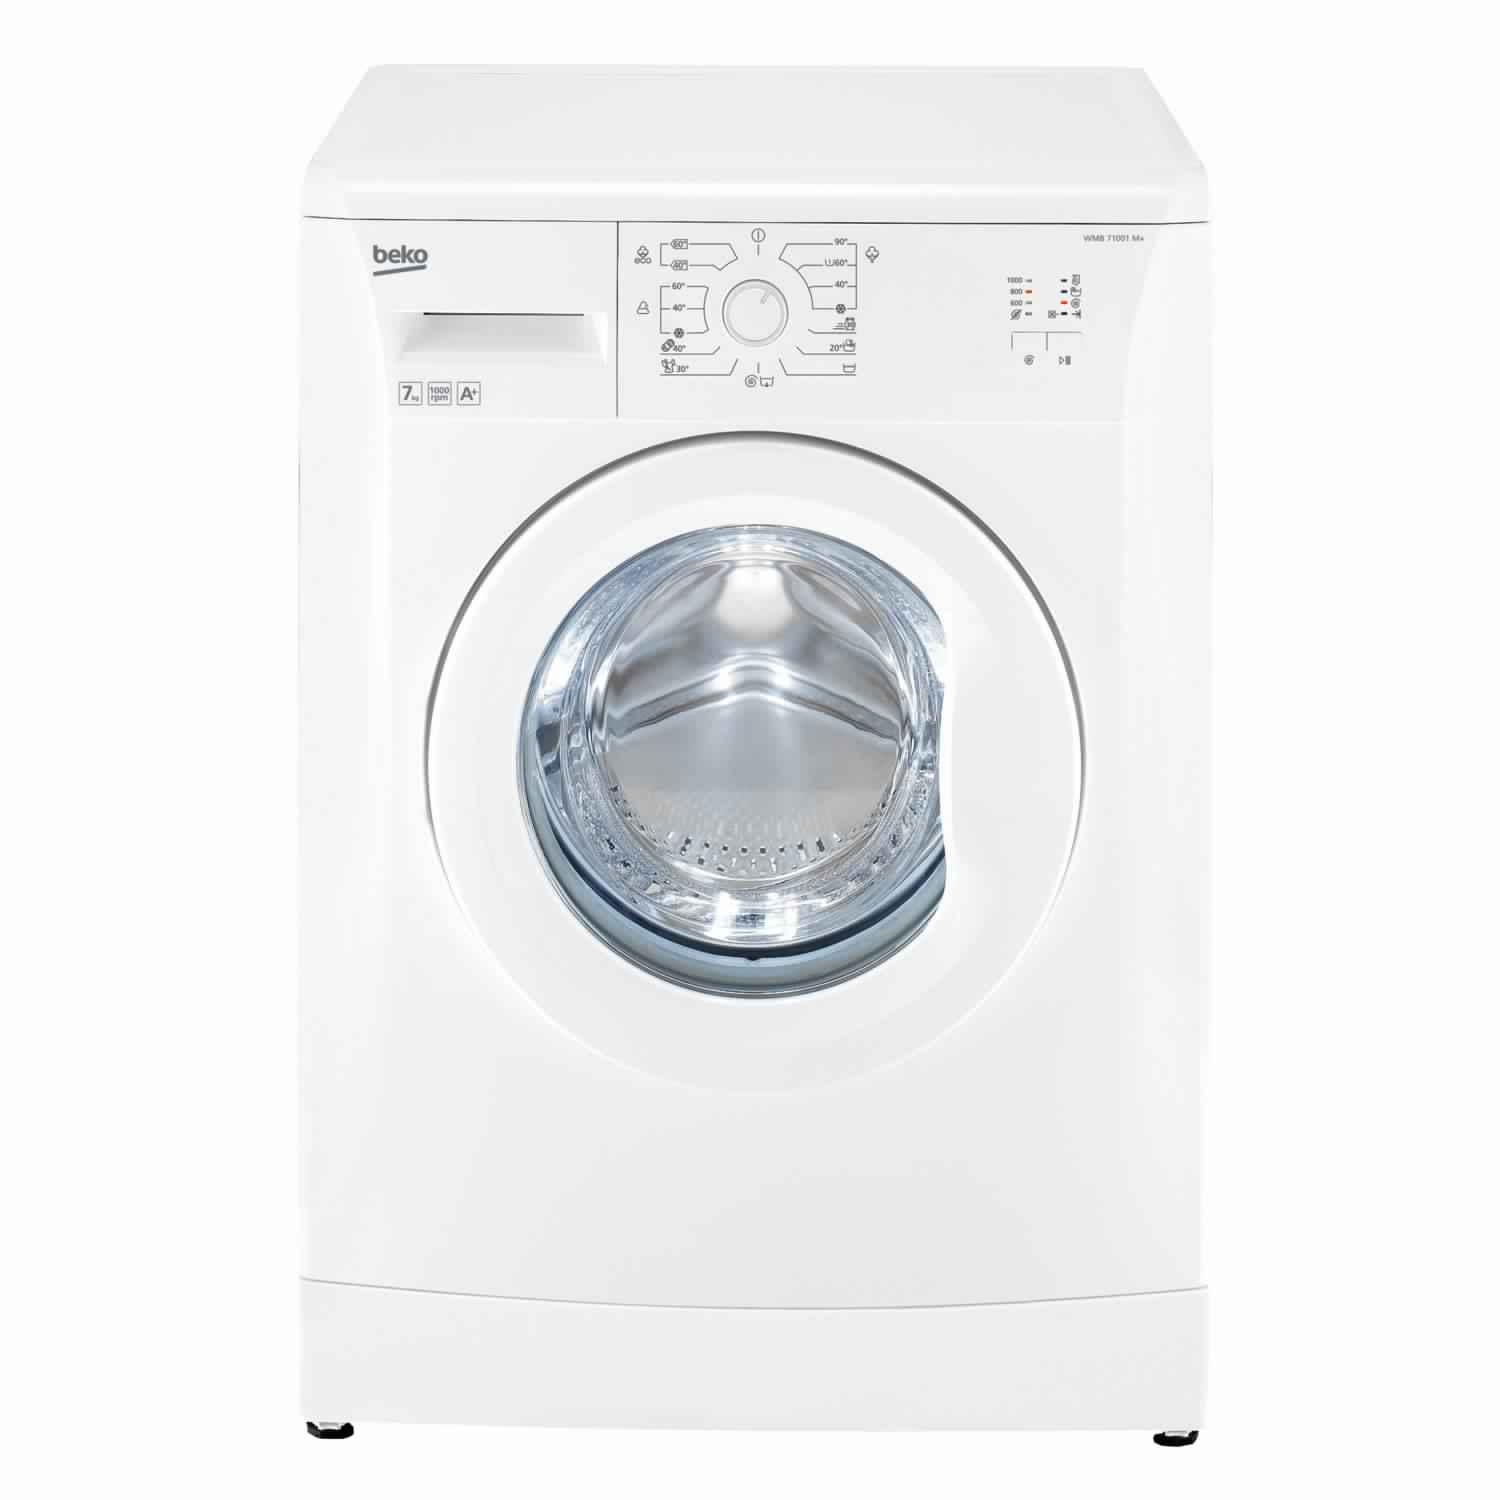 cityshop vente machine laver automatique beko 7kg blanc. Black Bedroom Furniture Sets. Home Design Ideas